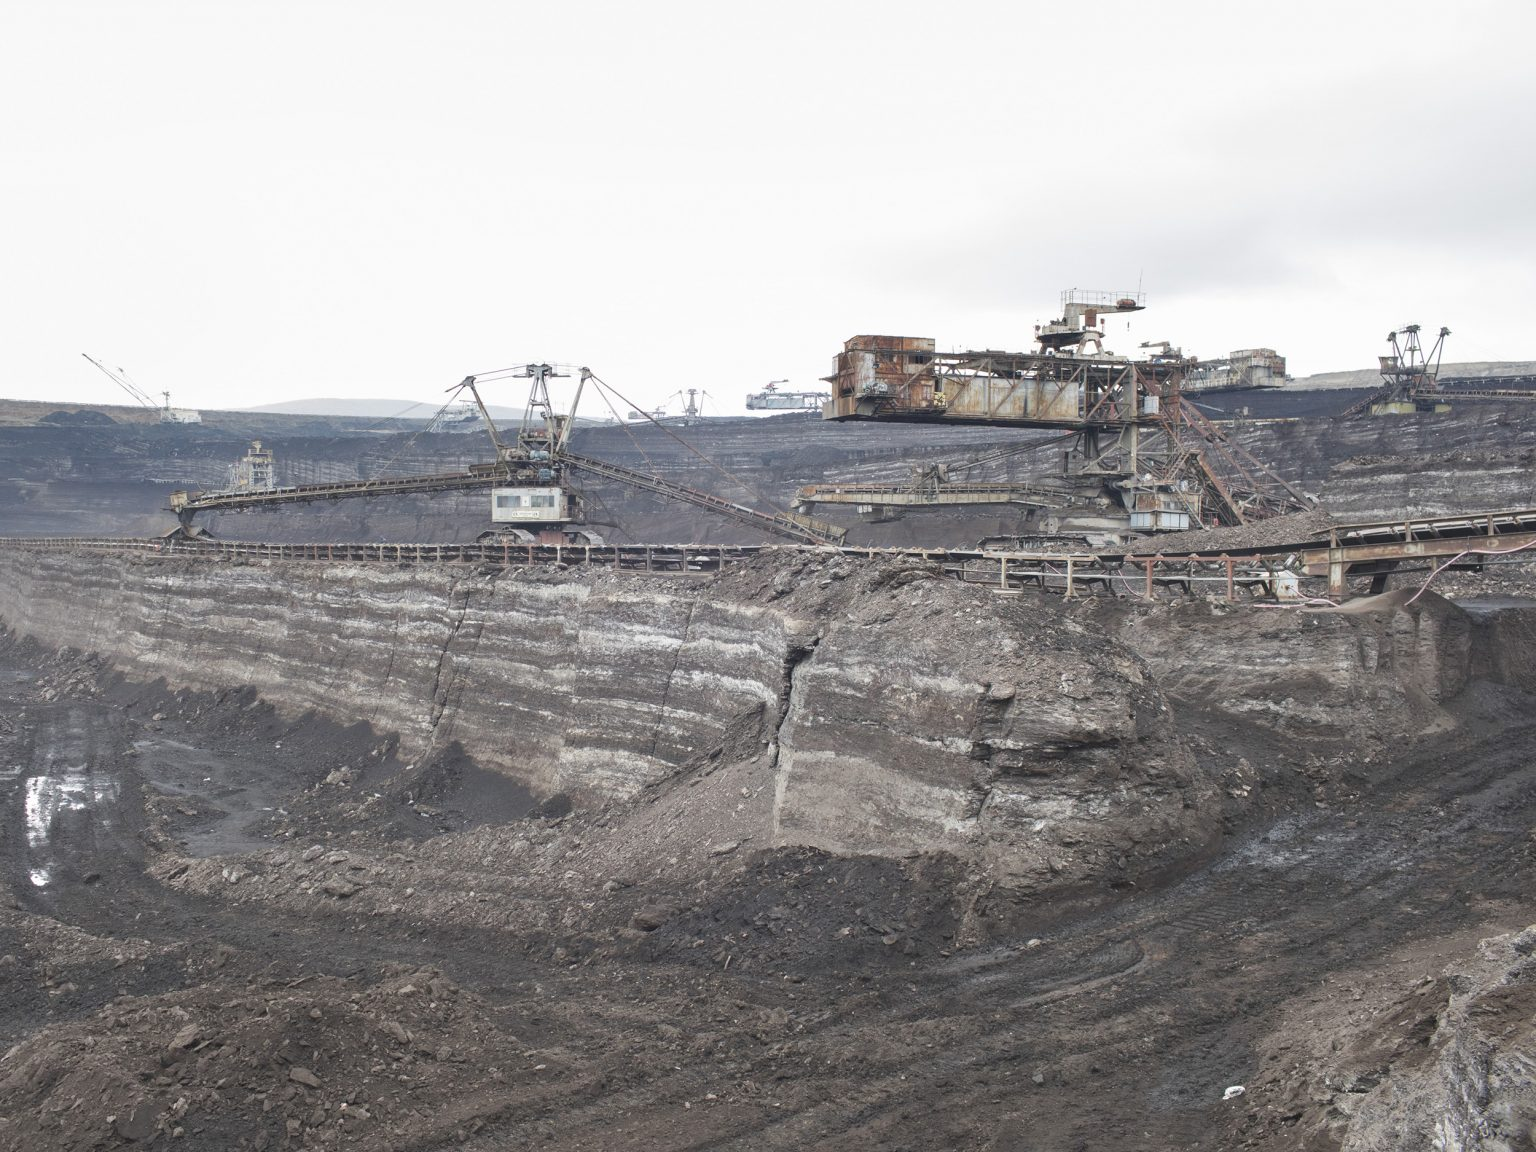 A view of the Sibovc coal mine located in Obiliq / Obilić, District of Prishtina / Priština. The mine, owned by KEK (Kosovo Energy Corporation) has coal reserves amounting to 1 billion tonnes of lignite, one of the largest lignite reserves in Europe.